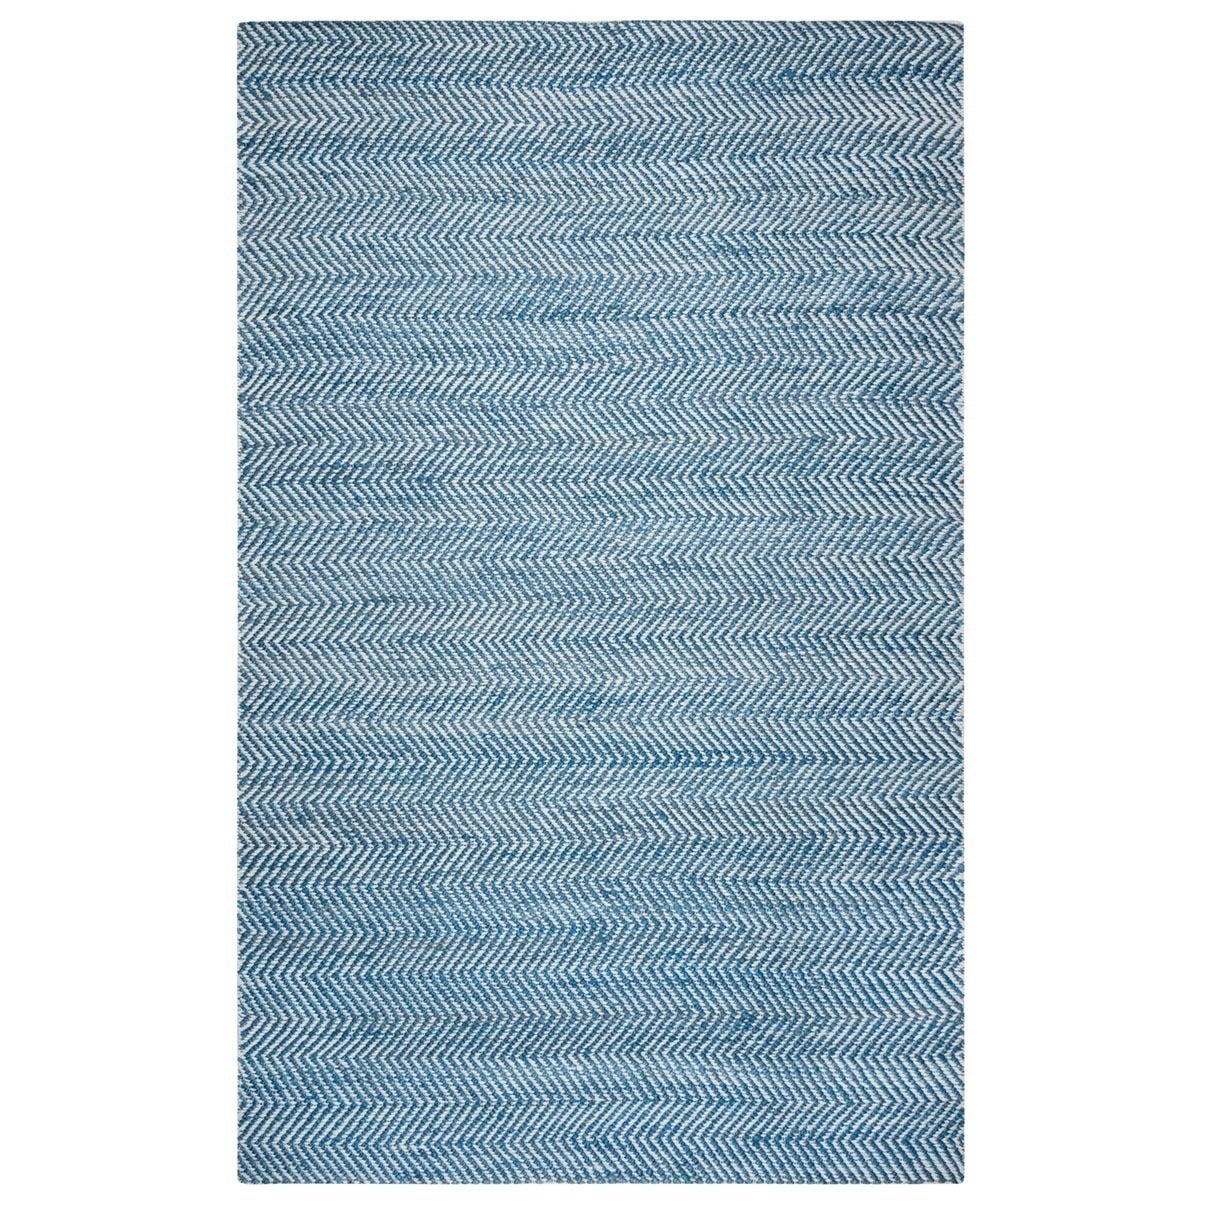 Rizzy Home Harlem Collection EG9638 Accent Rug (3 x 5) - 3 x 5 (3 x 5 - Blue)